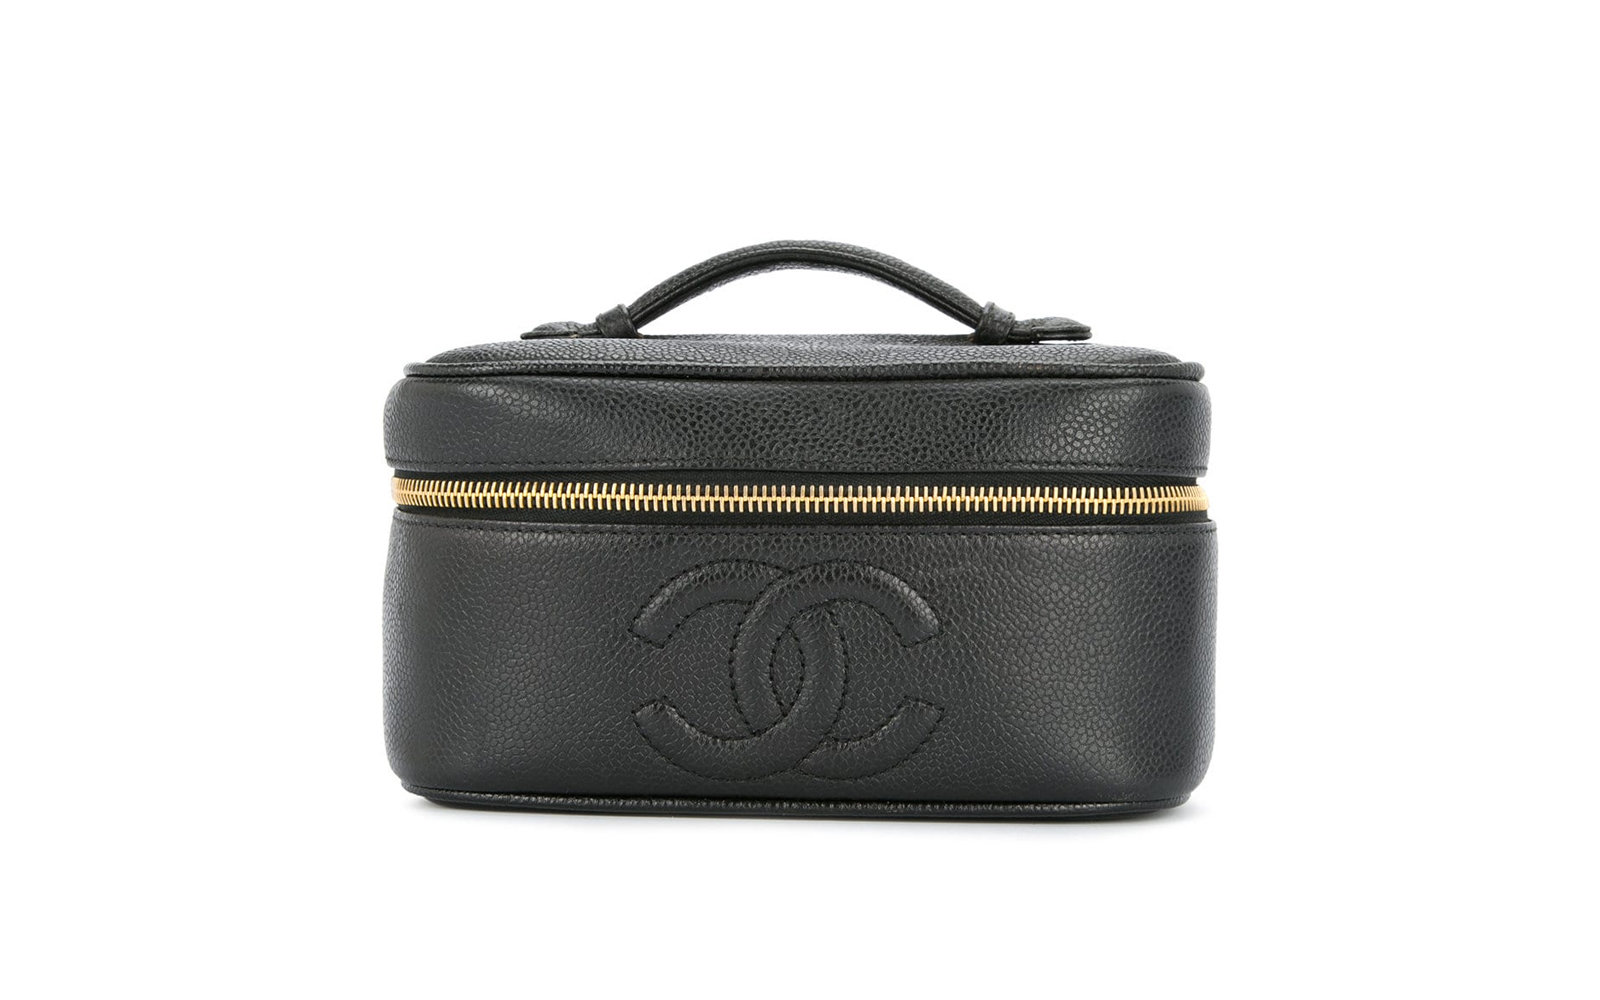 The Cosmetic Case: Vintage Chanel CC stitch vanity case